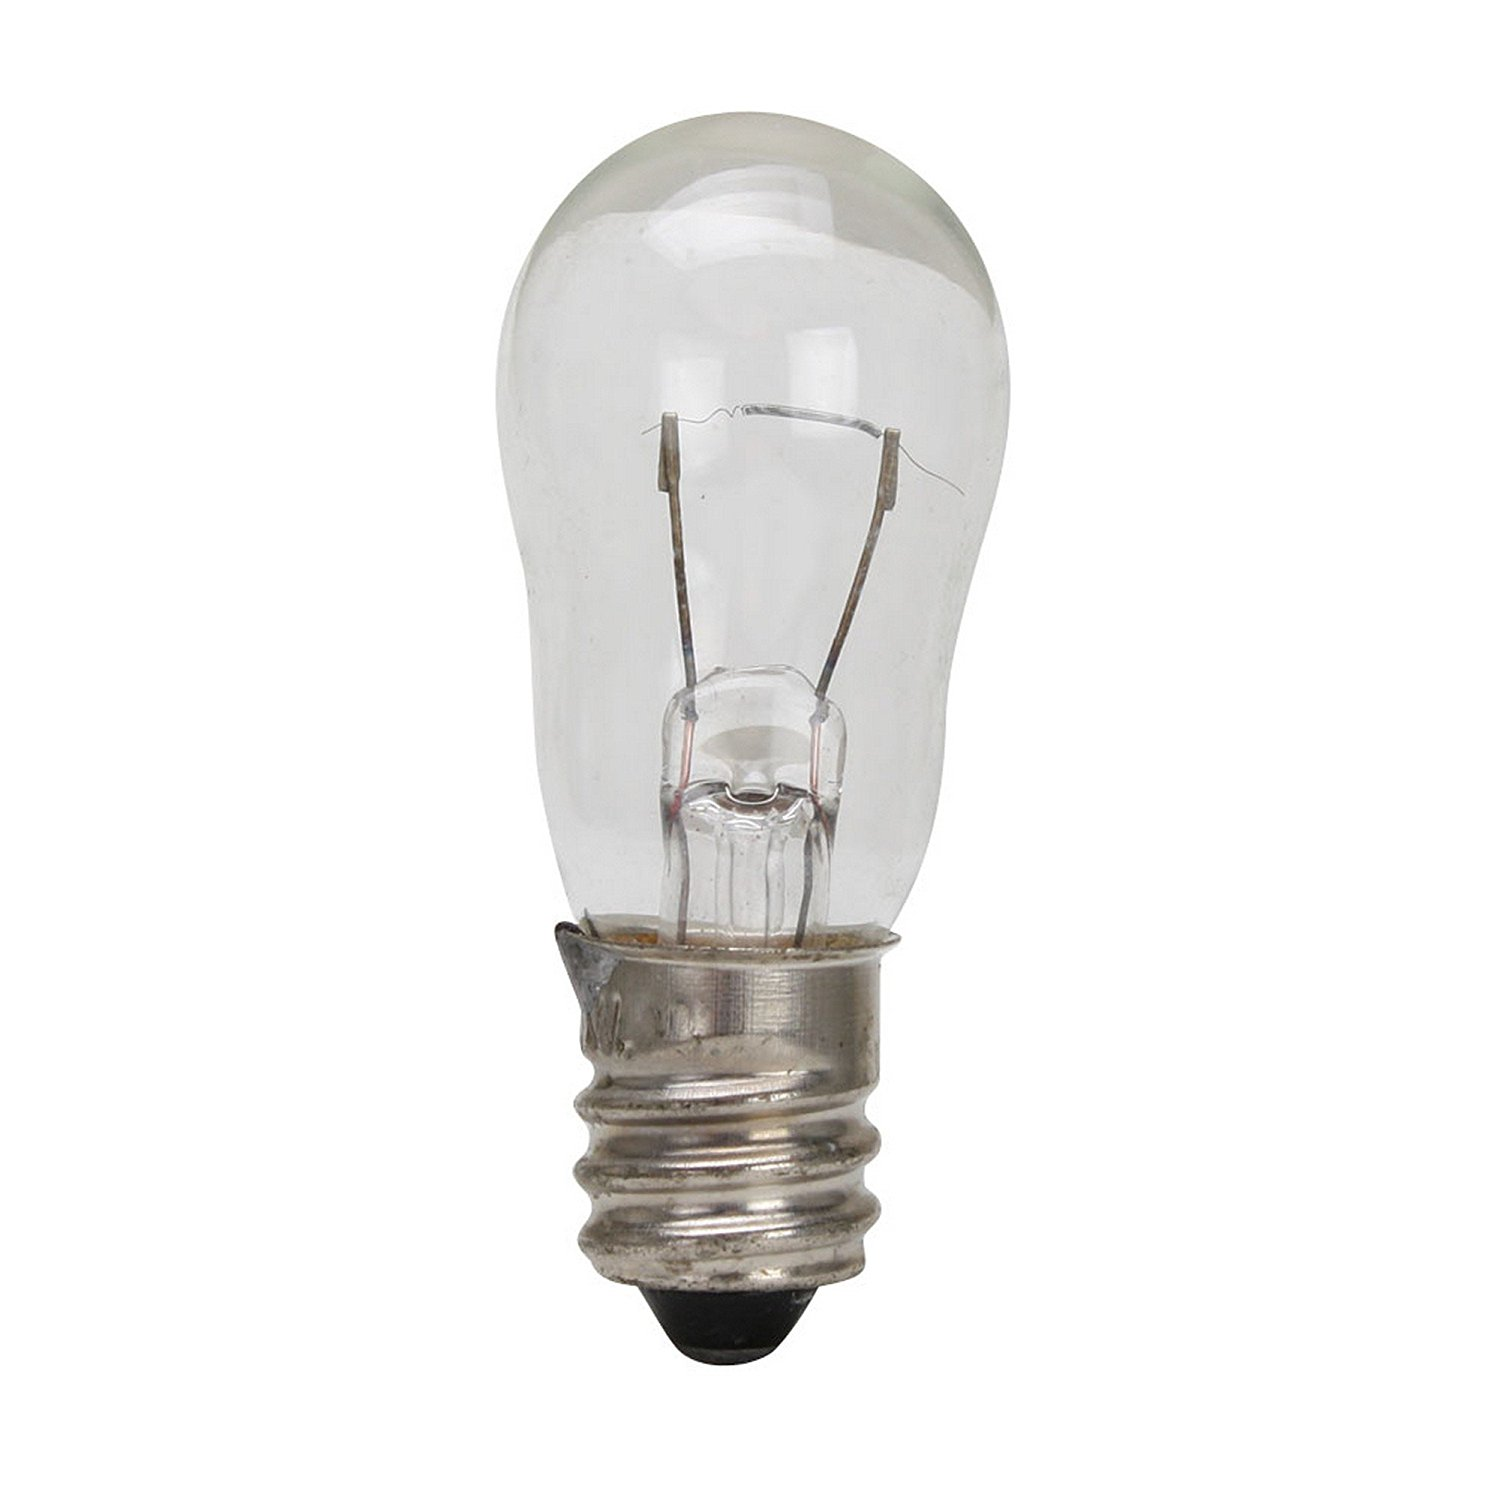 Water Disp Light Bulb For General Electric Ap3884244 Ps1155189 Wr02x12208 Ebay